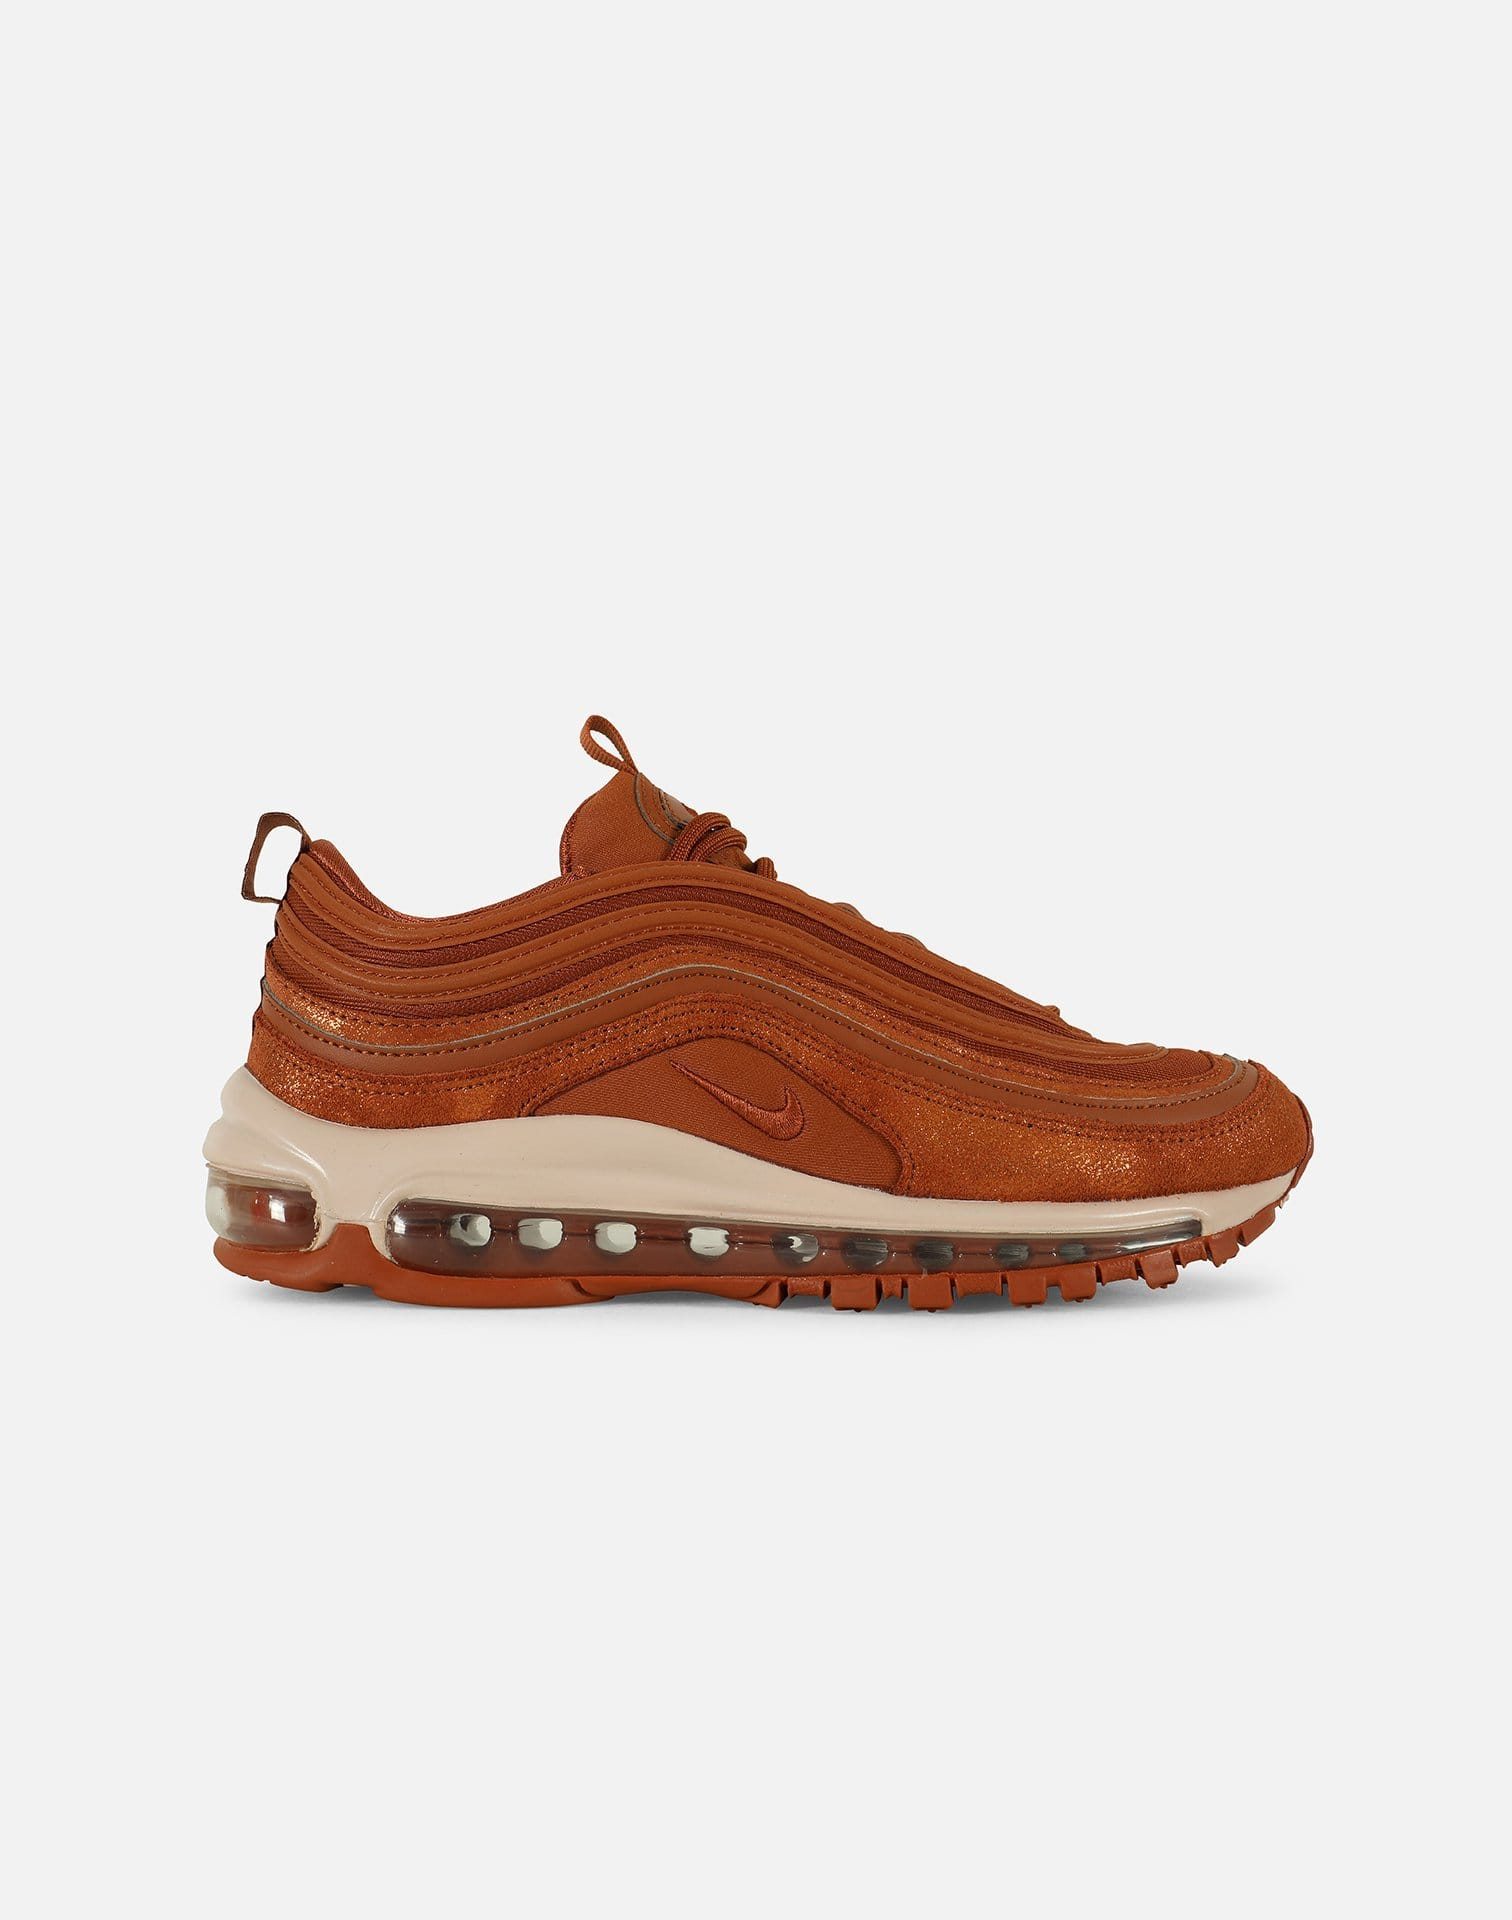 Details about Nike Air Max 97 SE Shoes Dark Russet Metallic Tawny Womens AV8198 201